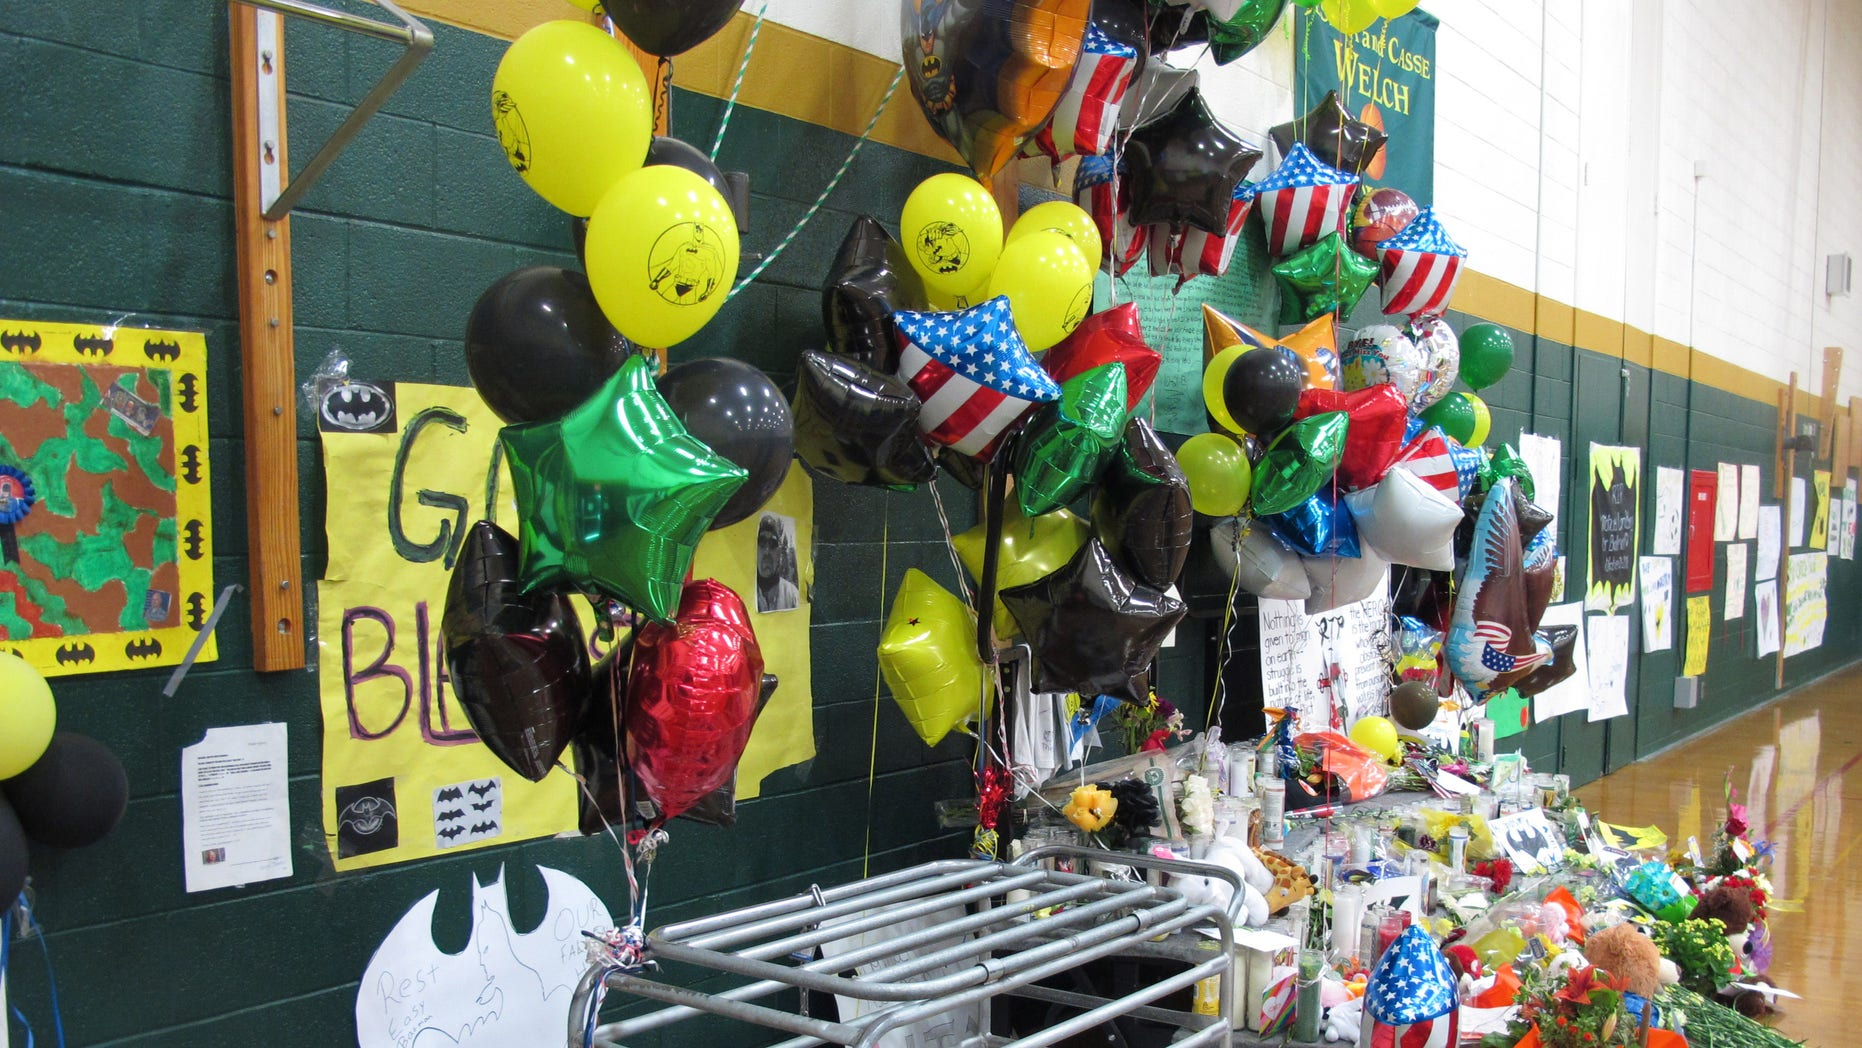 Oct. 24, 2013: This photo shows a memorial to fallen teacher Michael Landsberry, that Sparks Middle School officials moved to the gymnasium.